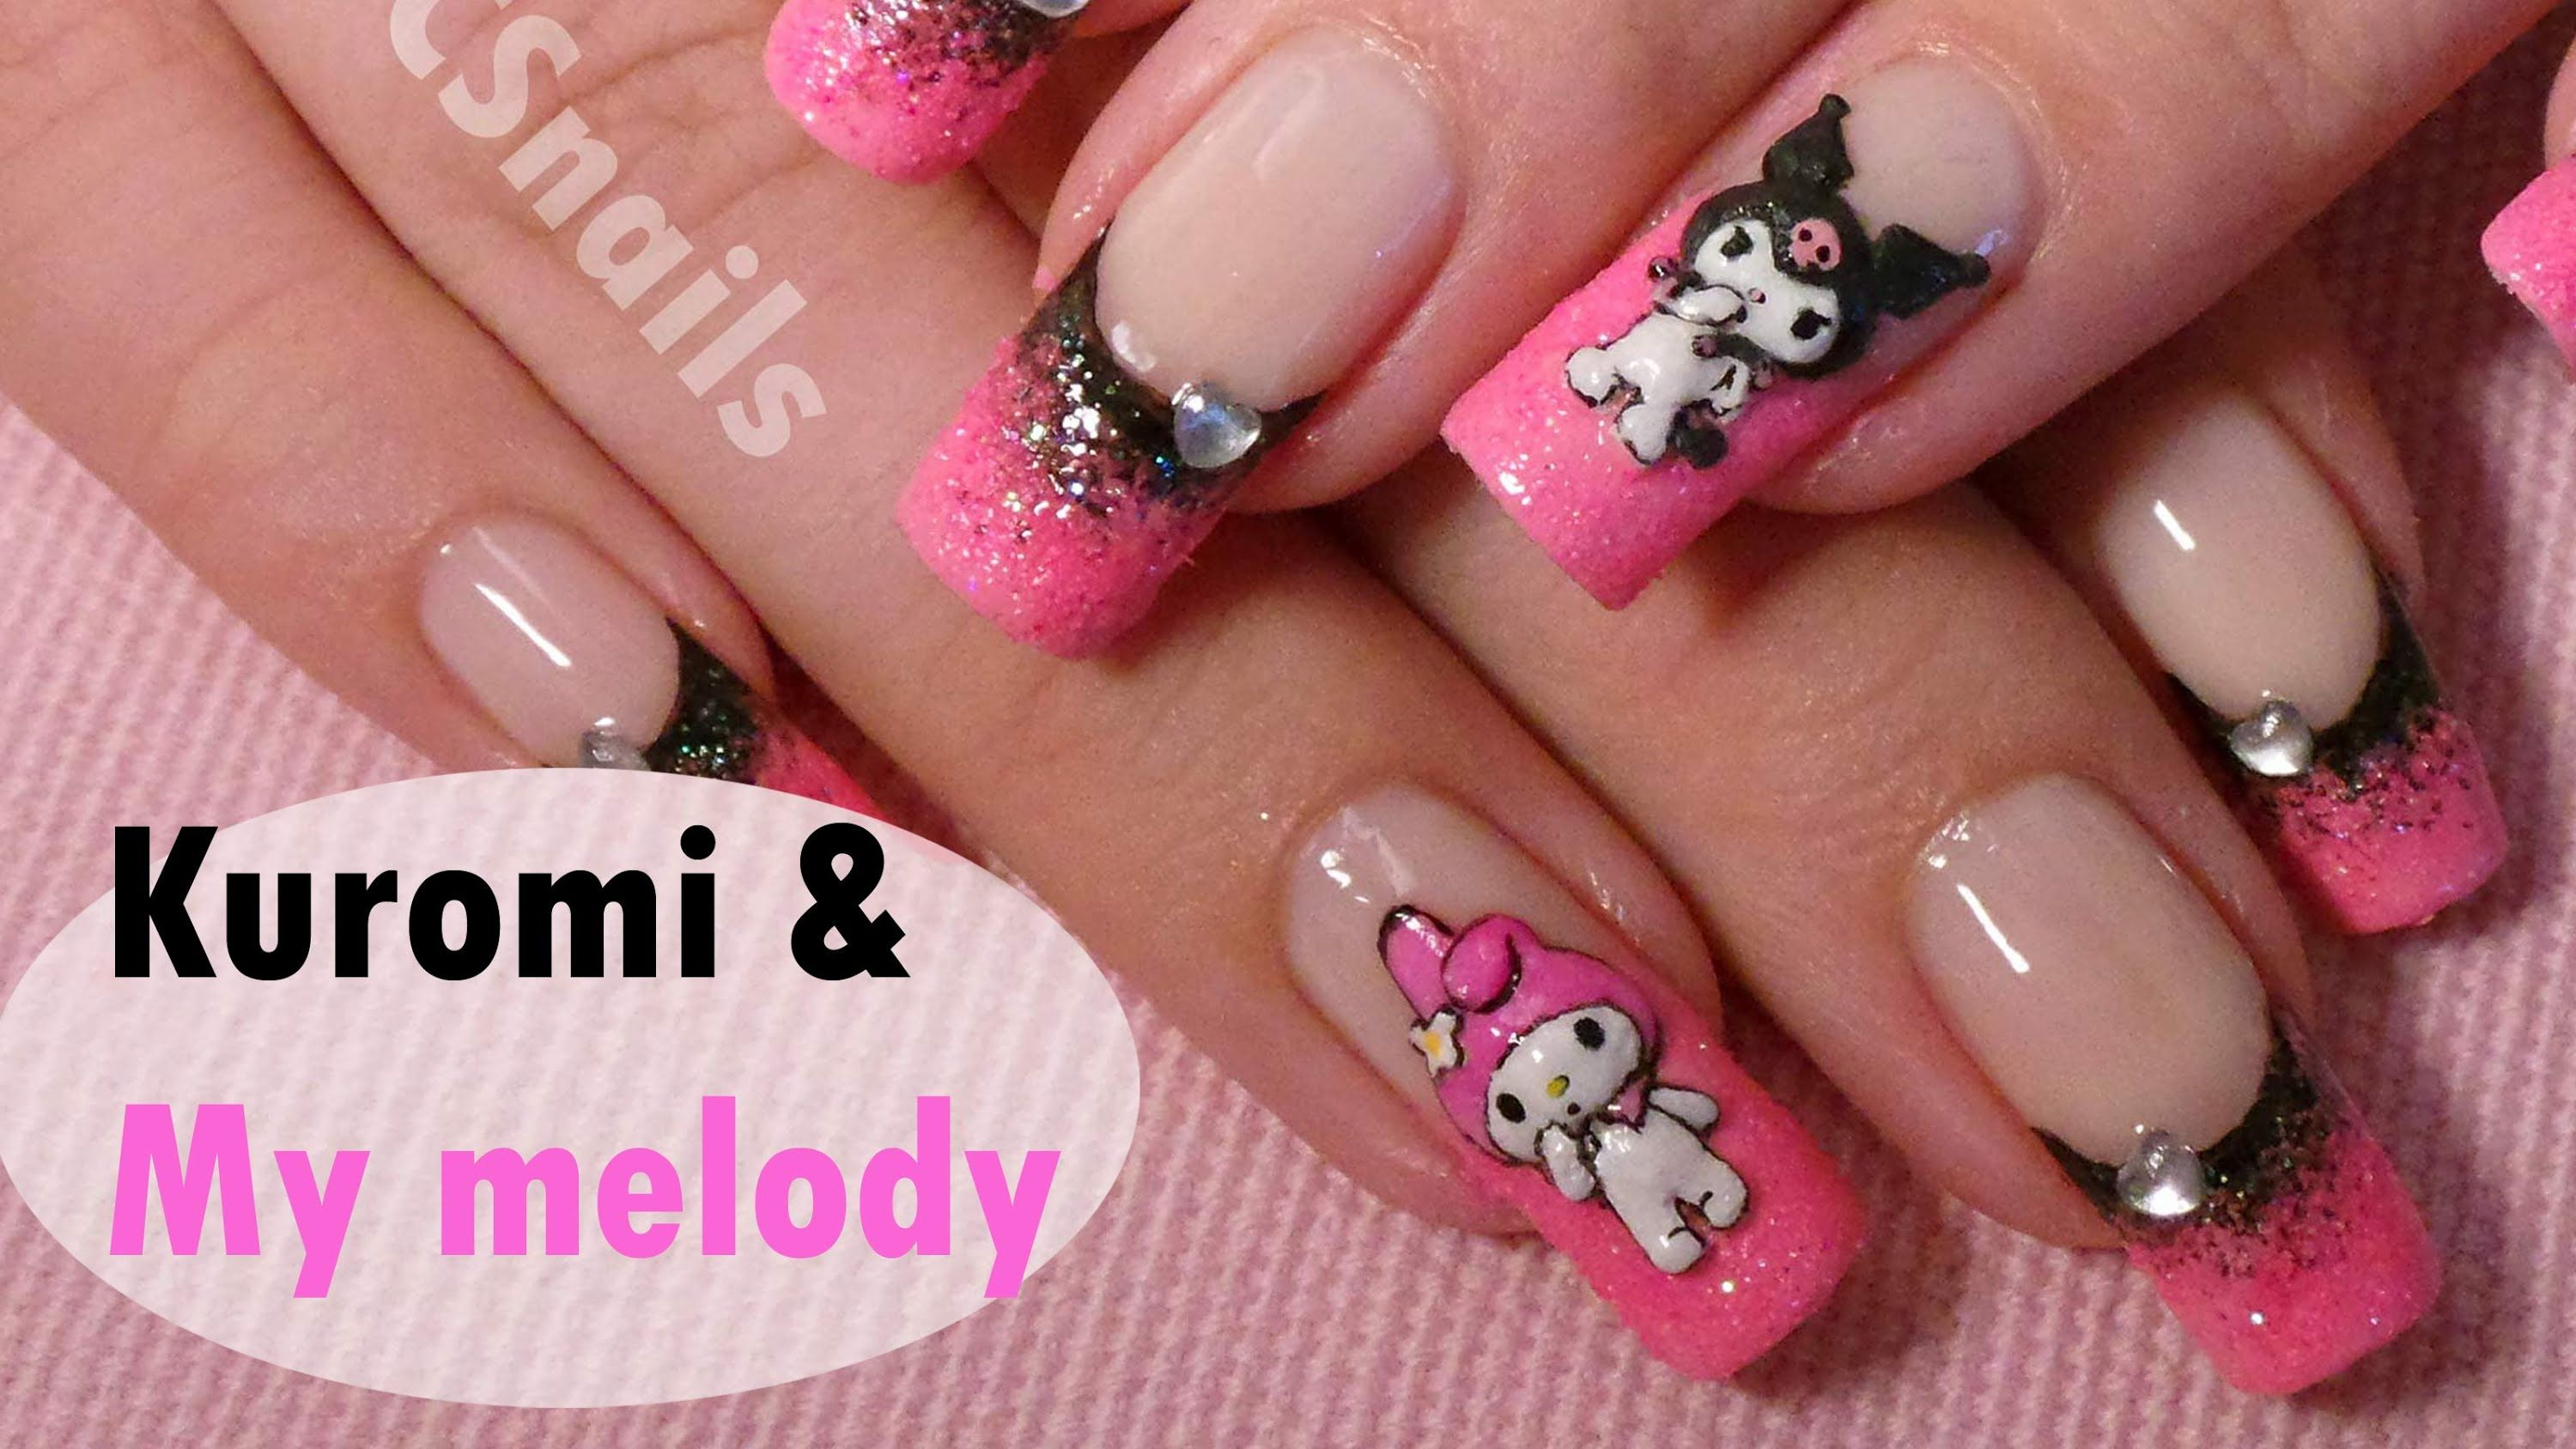 Sanrio Nail Art Tutorial Kuromi My Melody 3d Acrylic Nail Design Nail Designs Nail Art Tutorial Nails